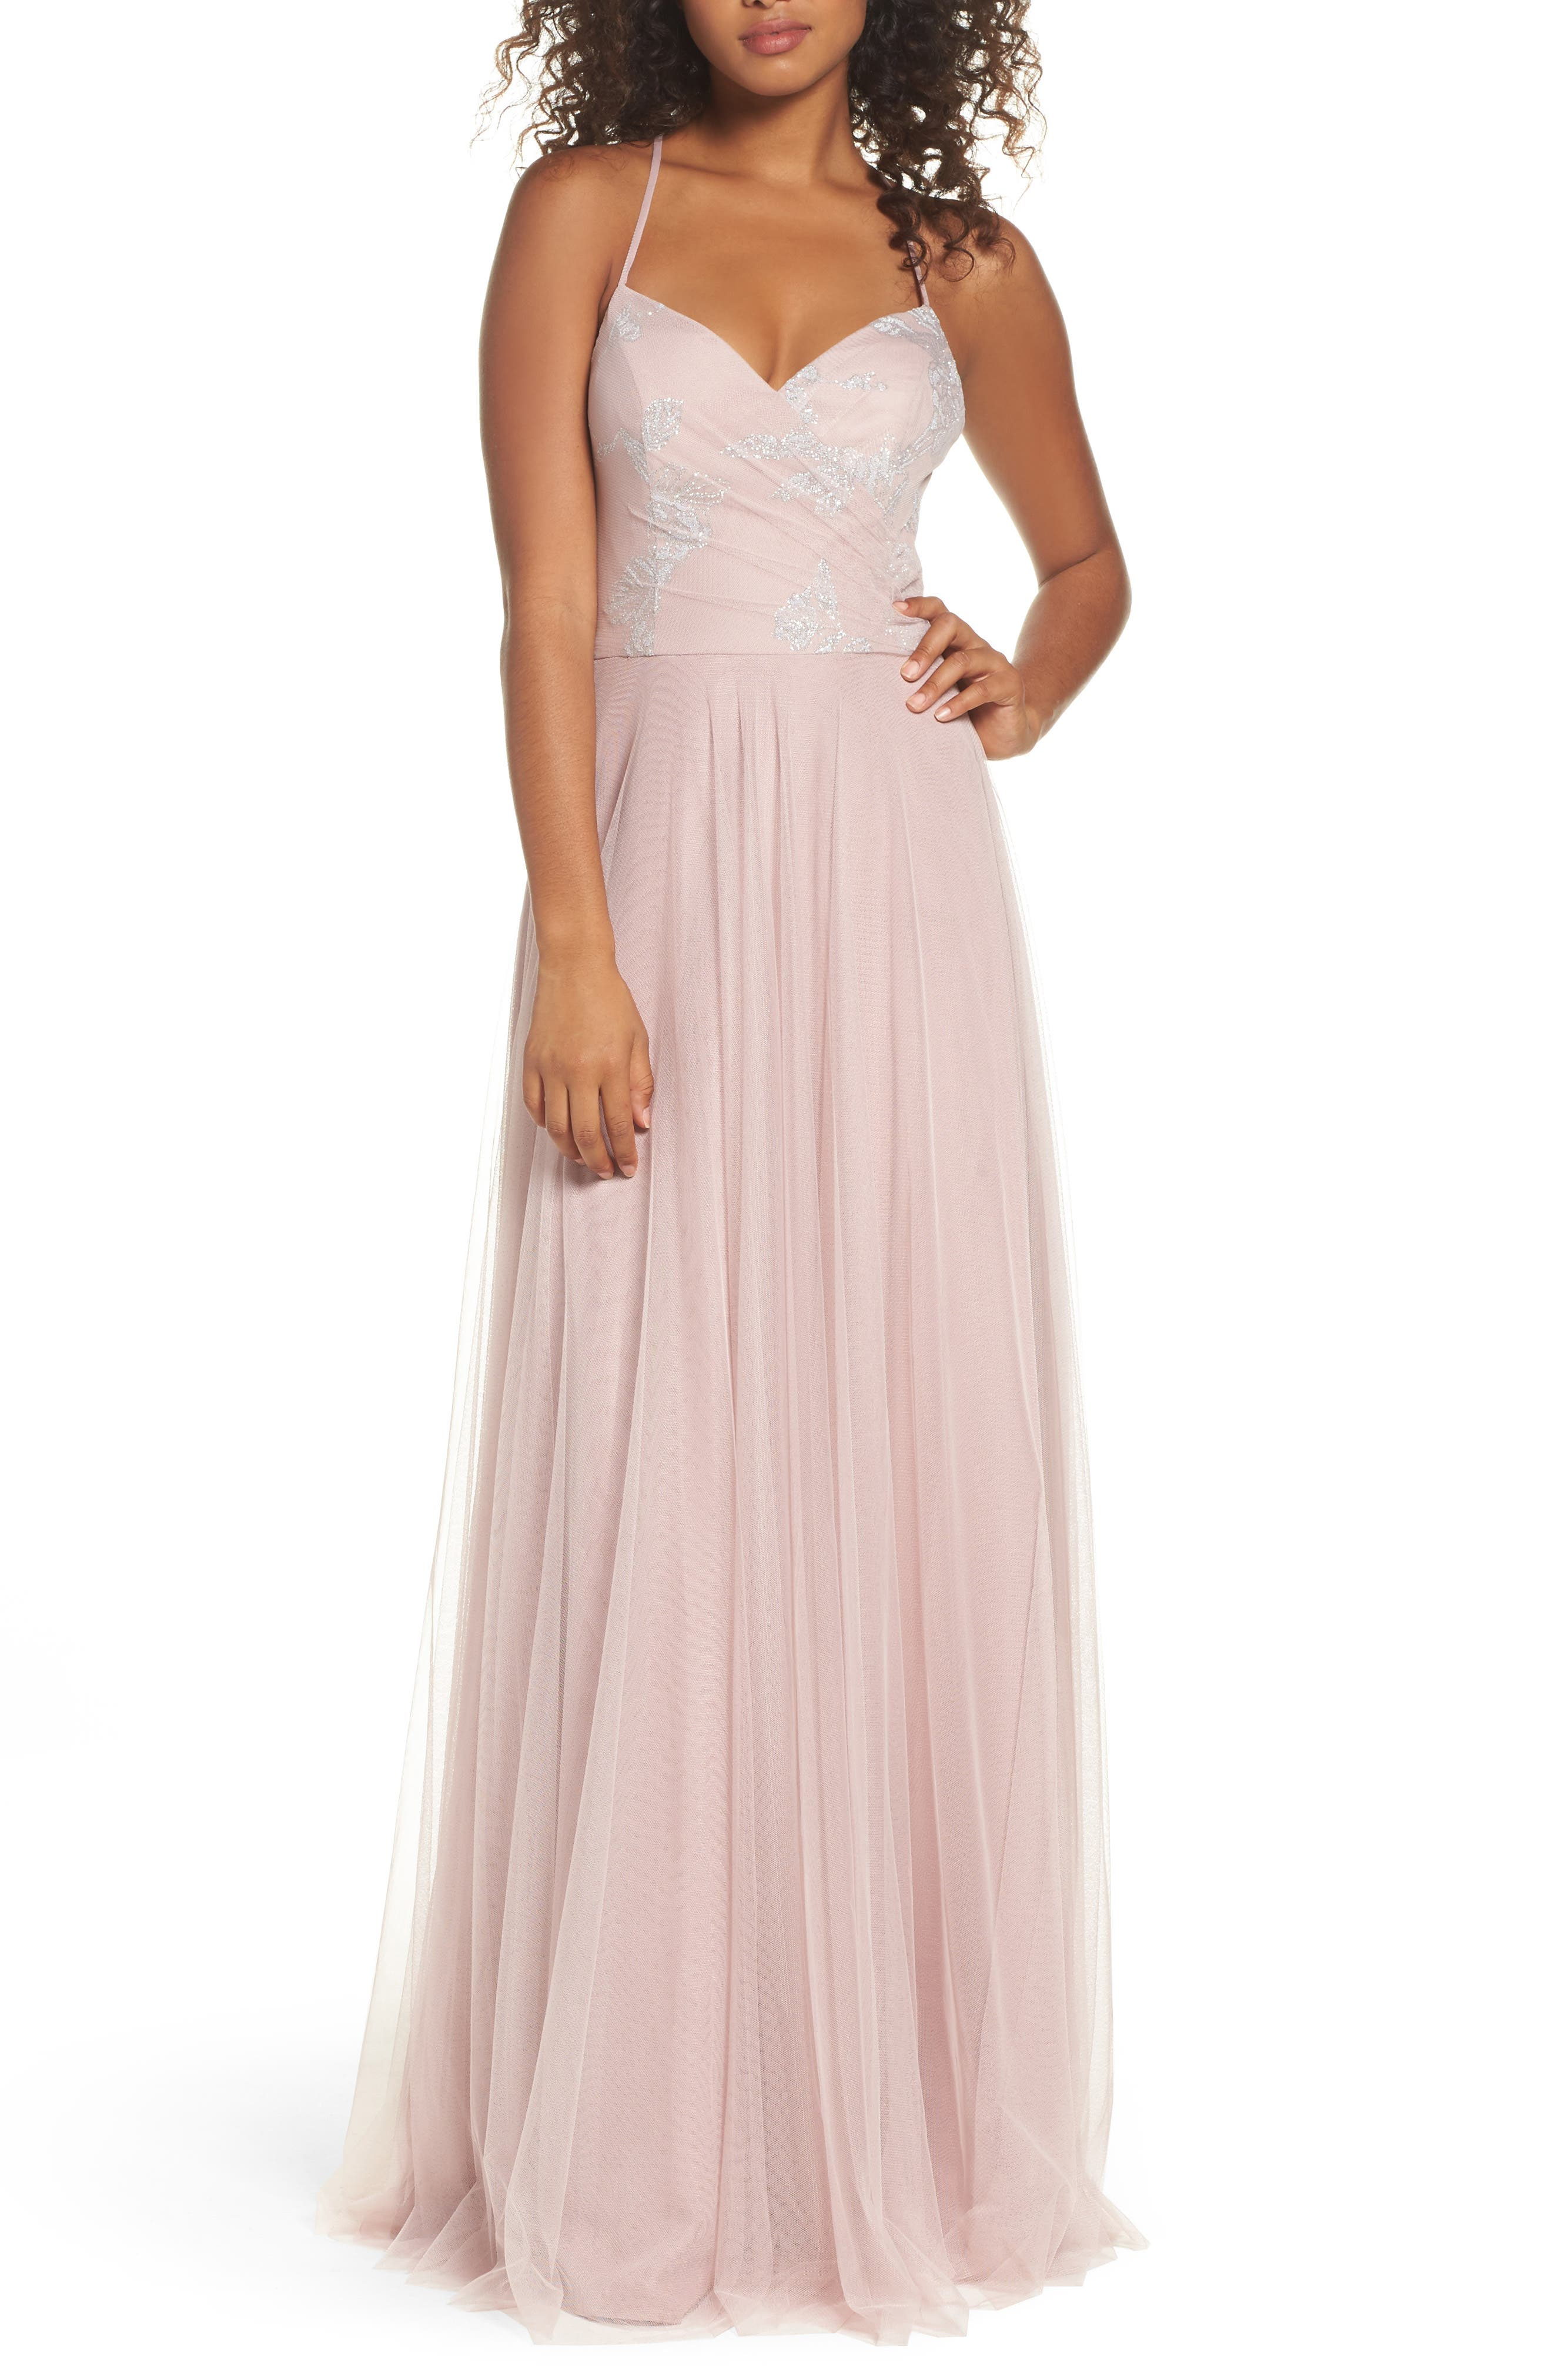 Main Image - Hayley Paige Occasions Embellished Bodice Net Halter Gown